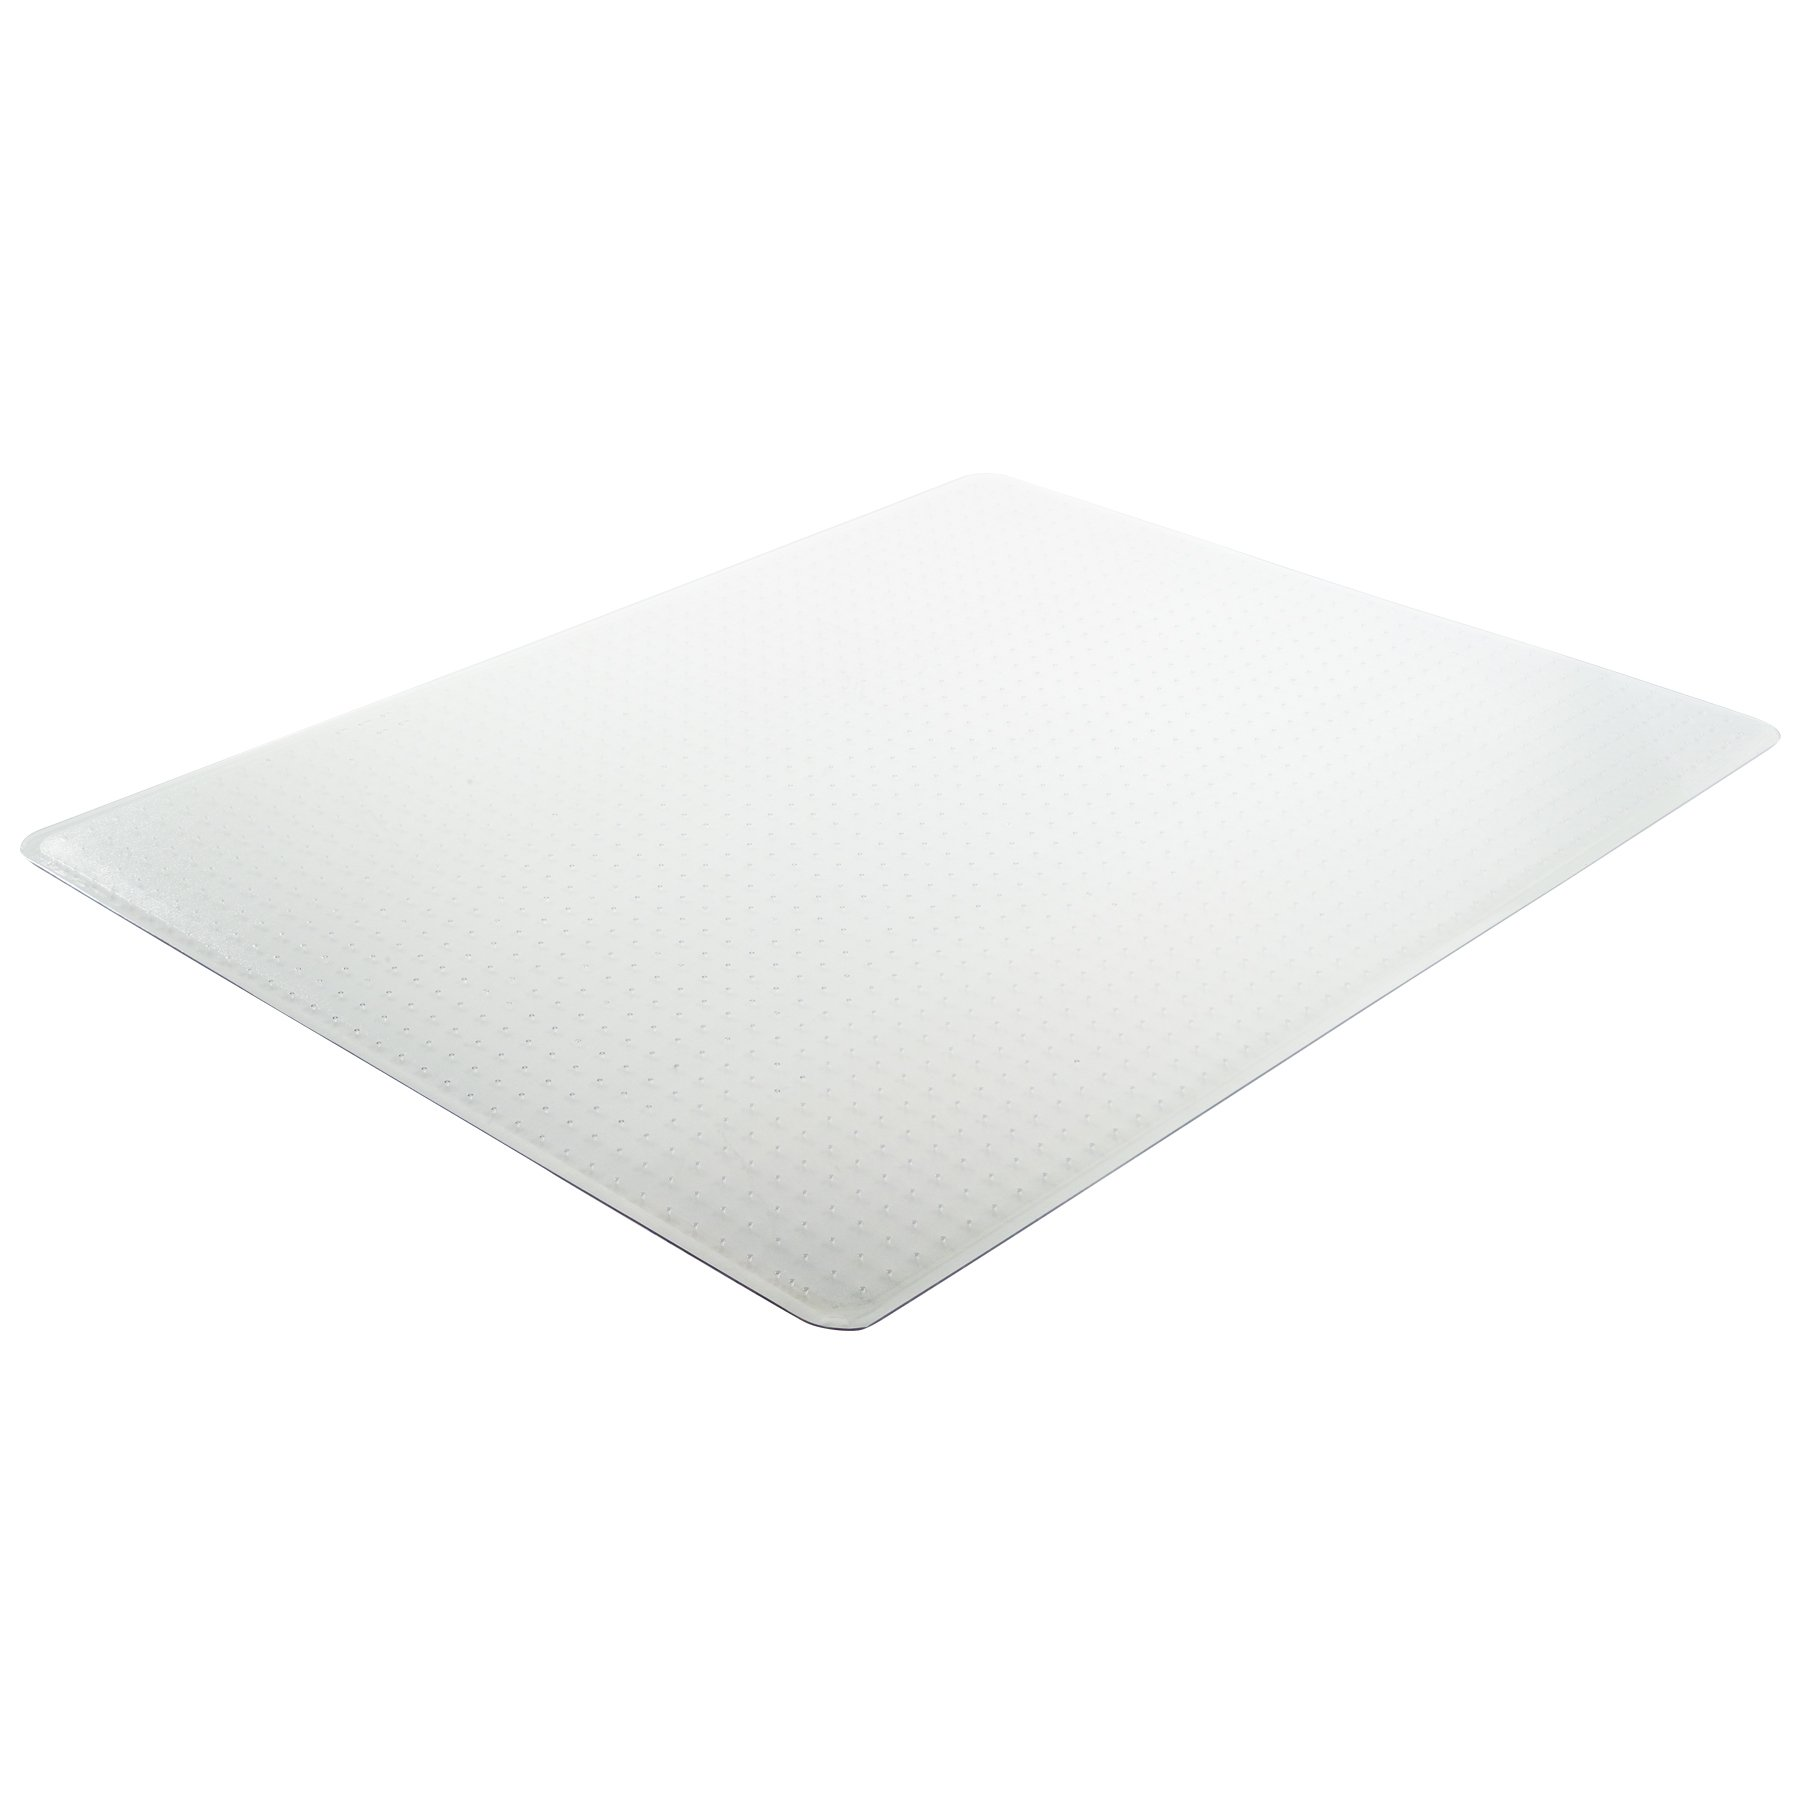 Deflecto RollaMat Clear Chair Mat, Medium Pile Carpet Use, Rectangle, Beveled Edge, 60 x 96 Inches (CM15943)